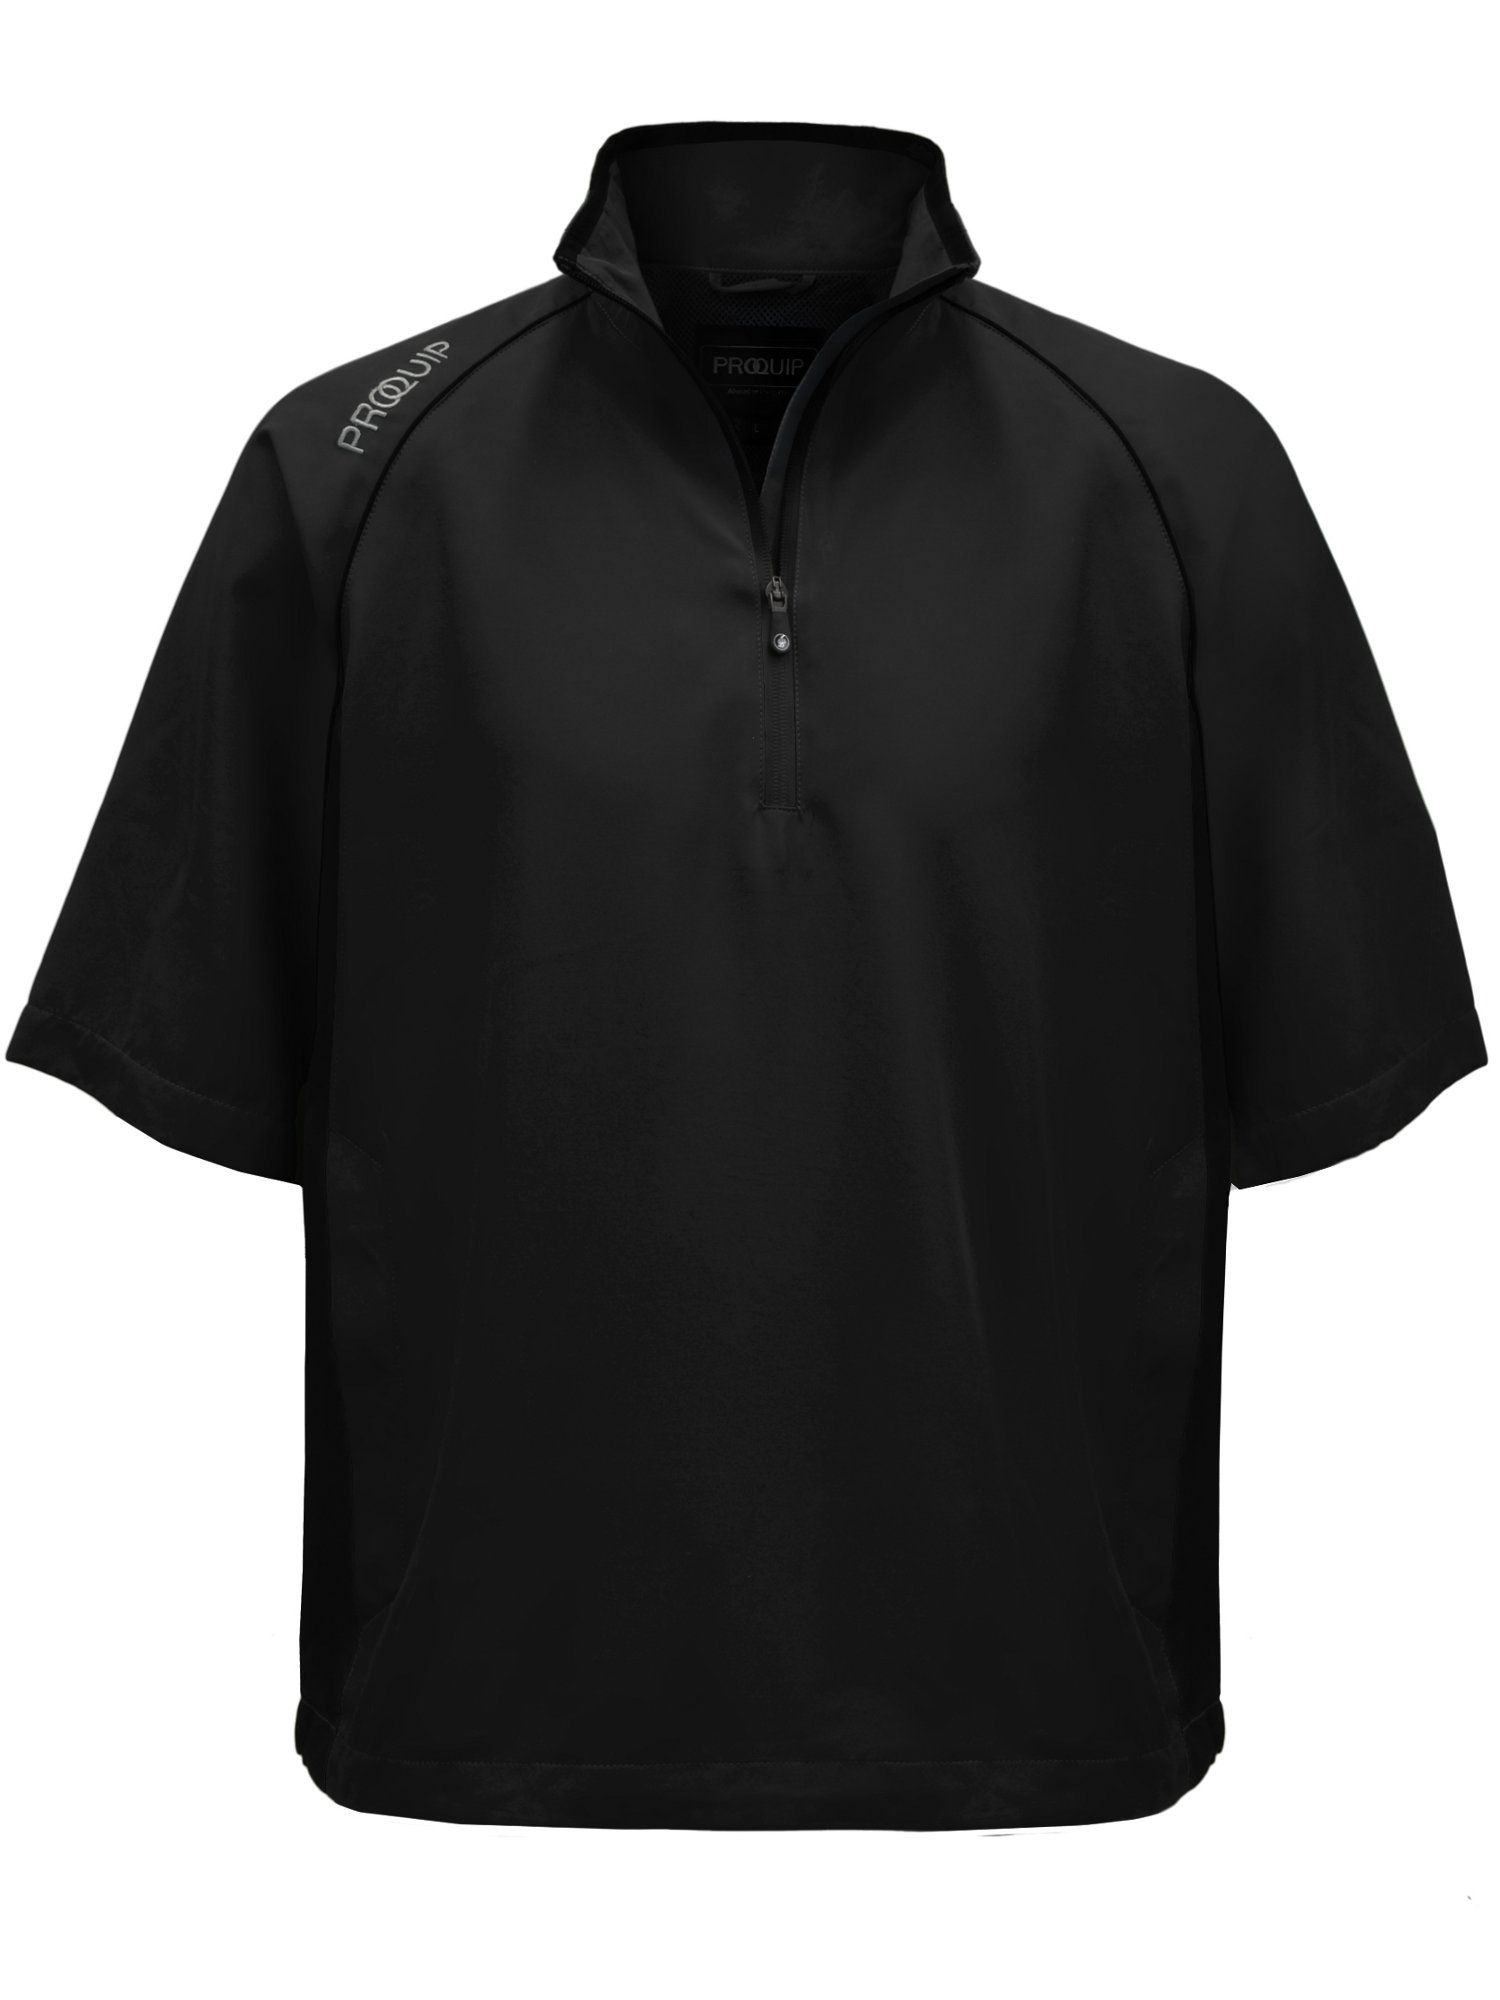 Ultralite half sleeve windtop